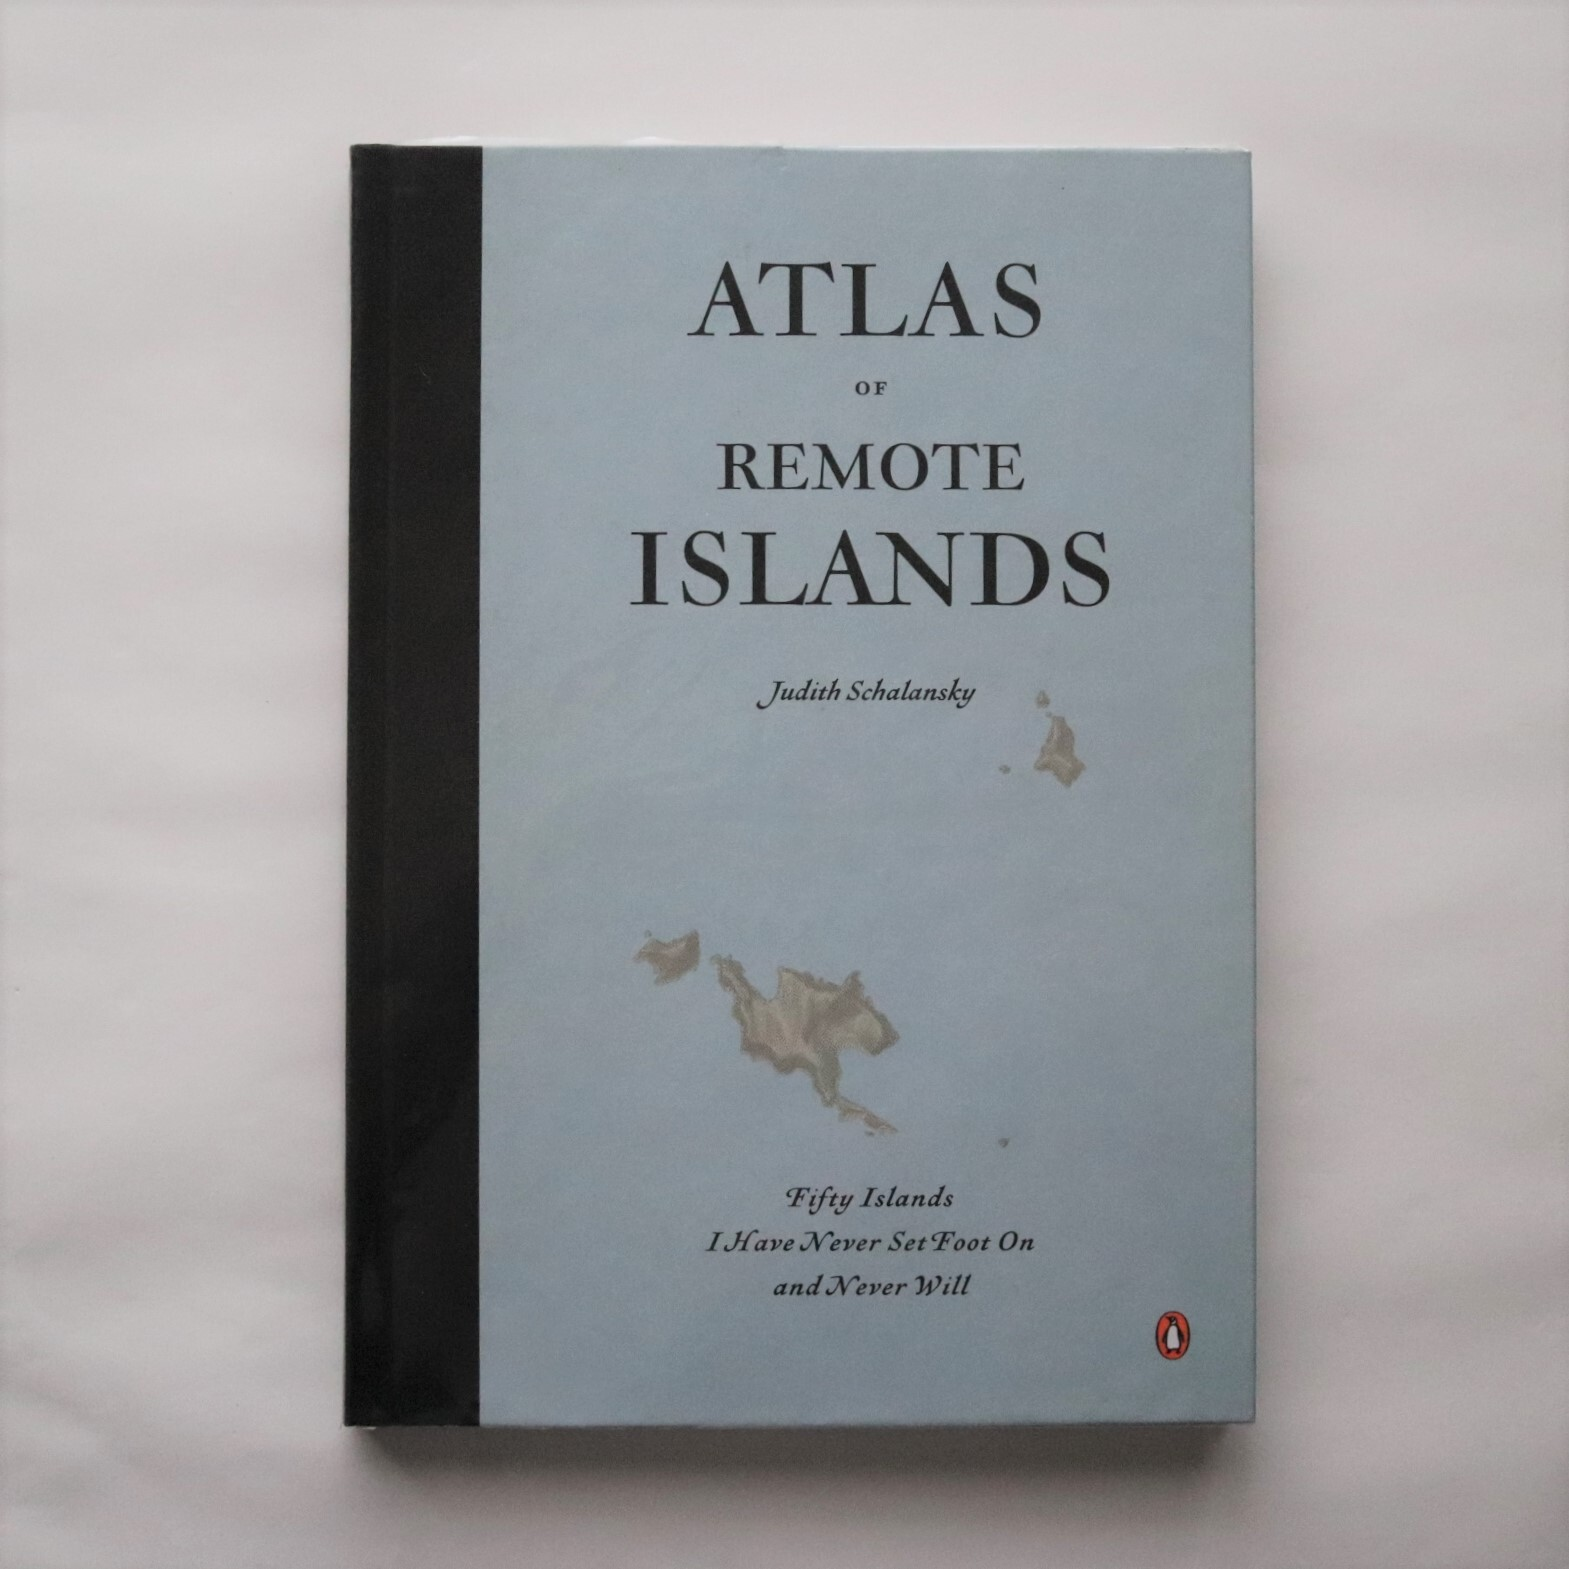 Atlas of Remote Islands: Fifty Islands I Have Never Set Foot On and Never Will / Judith Schalansky (著)